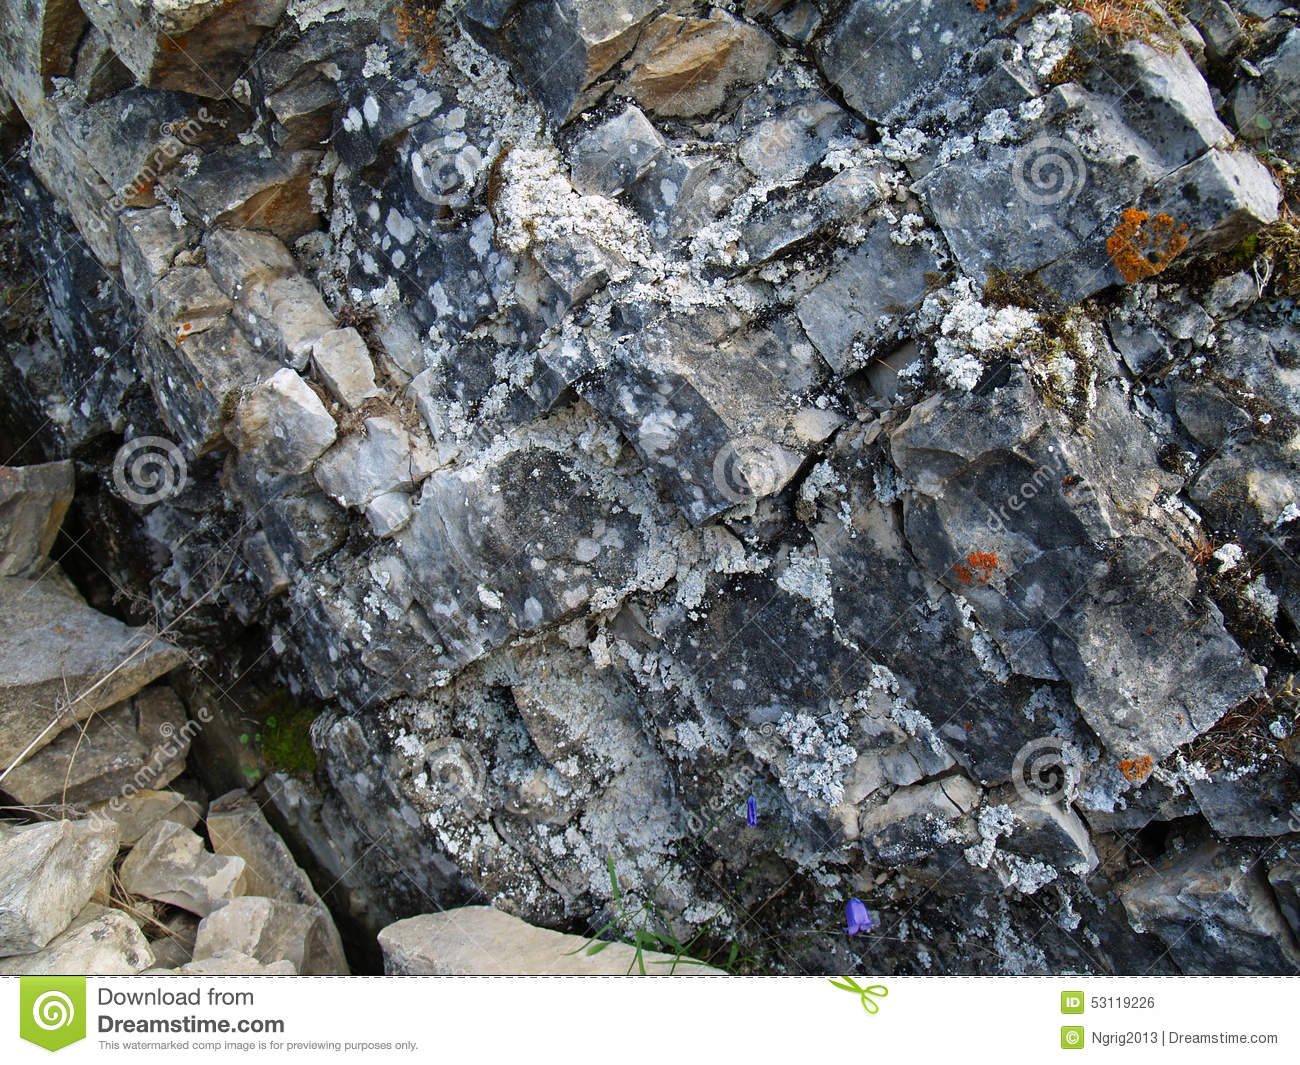 Lichens and mosses on stones (Lena Pillars, Yakutia)